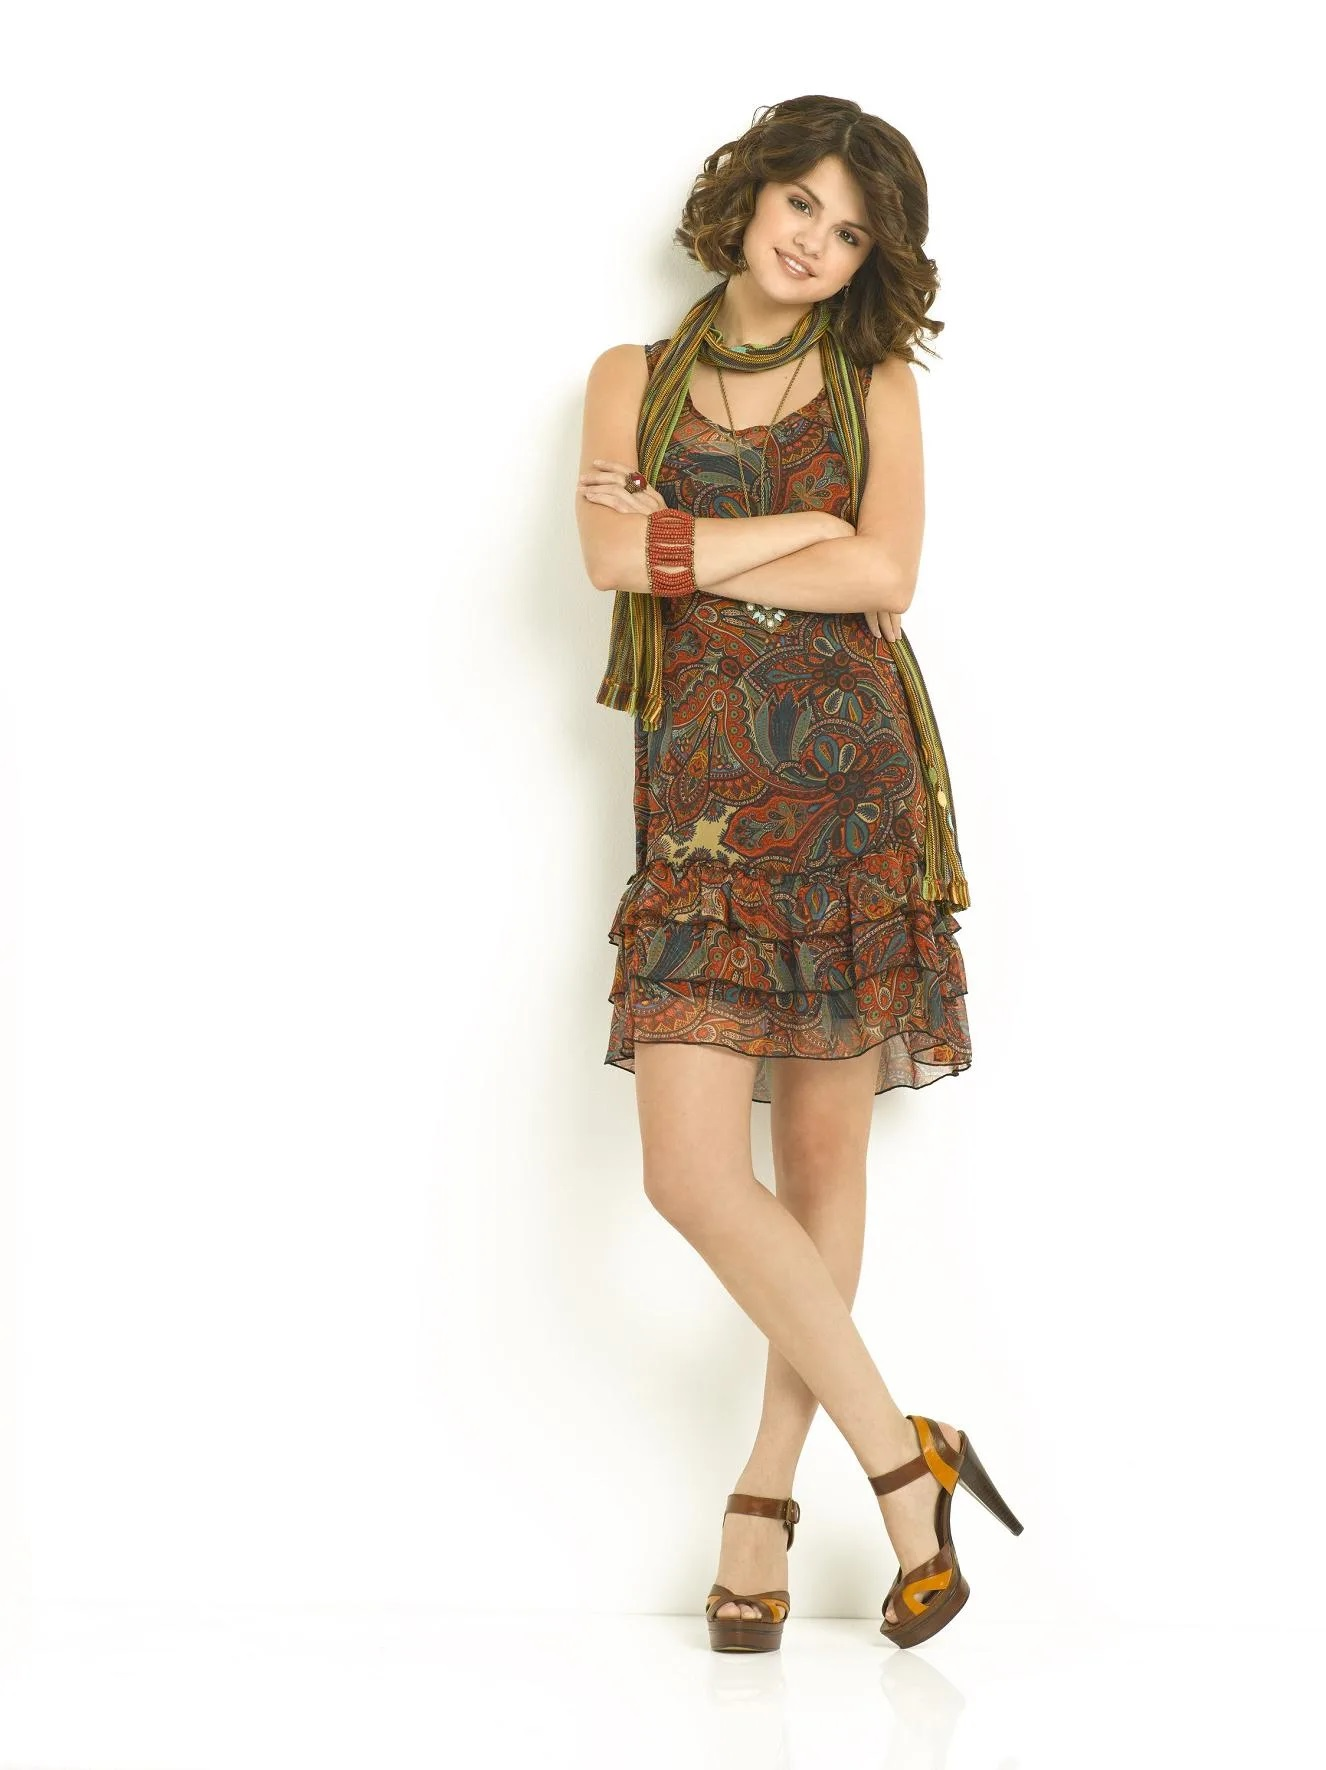 Alex Russo S Style Wizards Of Waverly Place Wiki